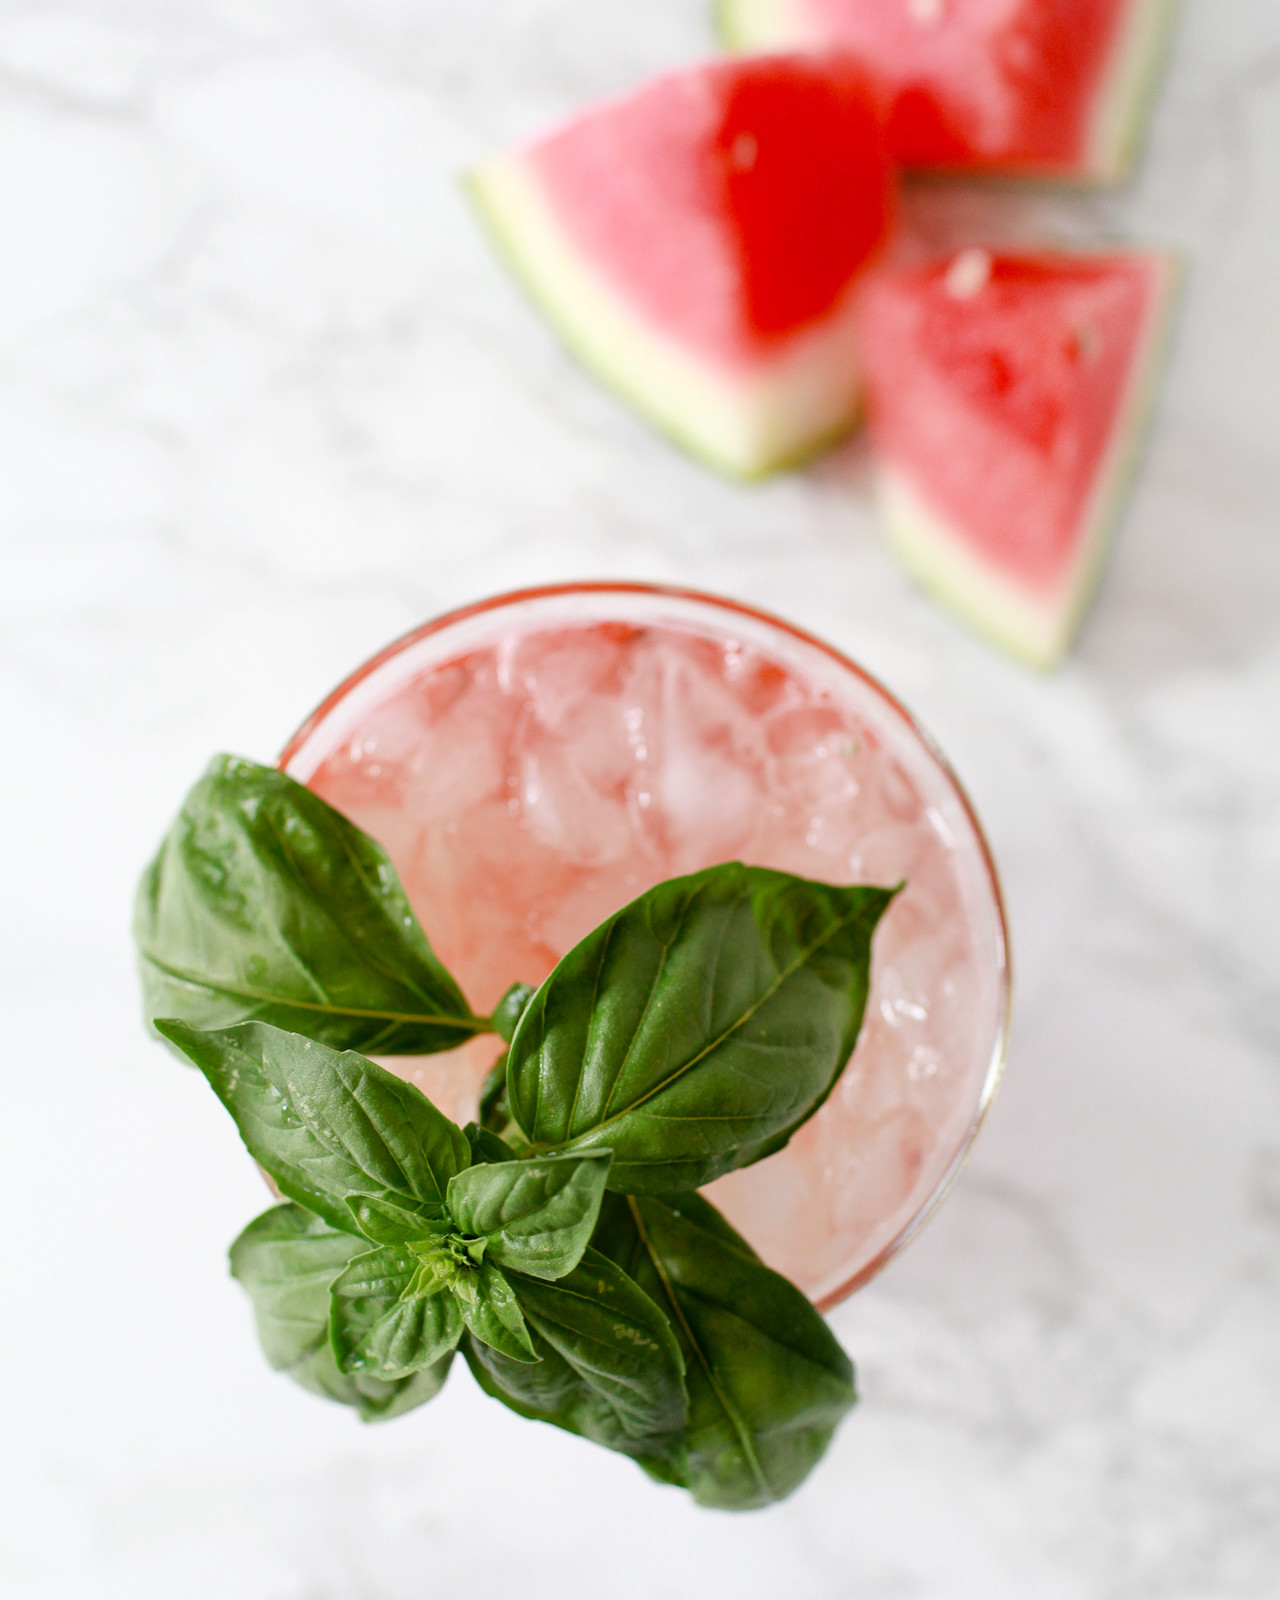 Best Cocktails of 2016: Watermelon-Basil Rum Smash